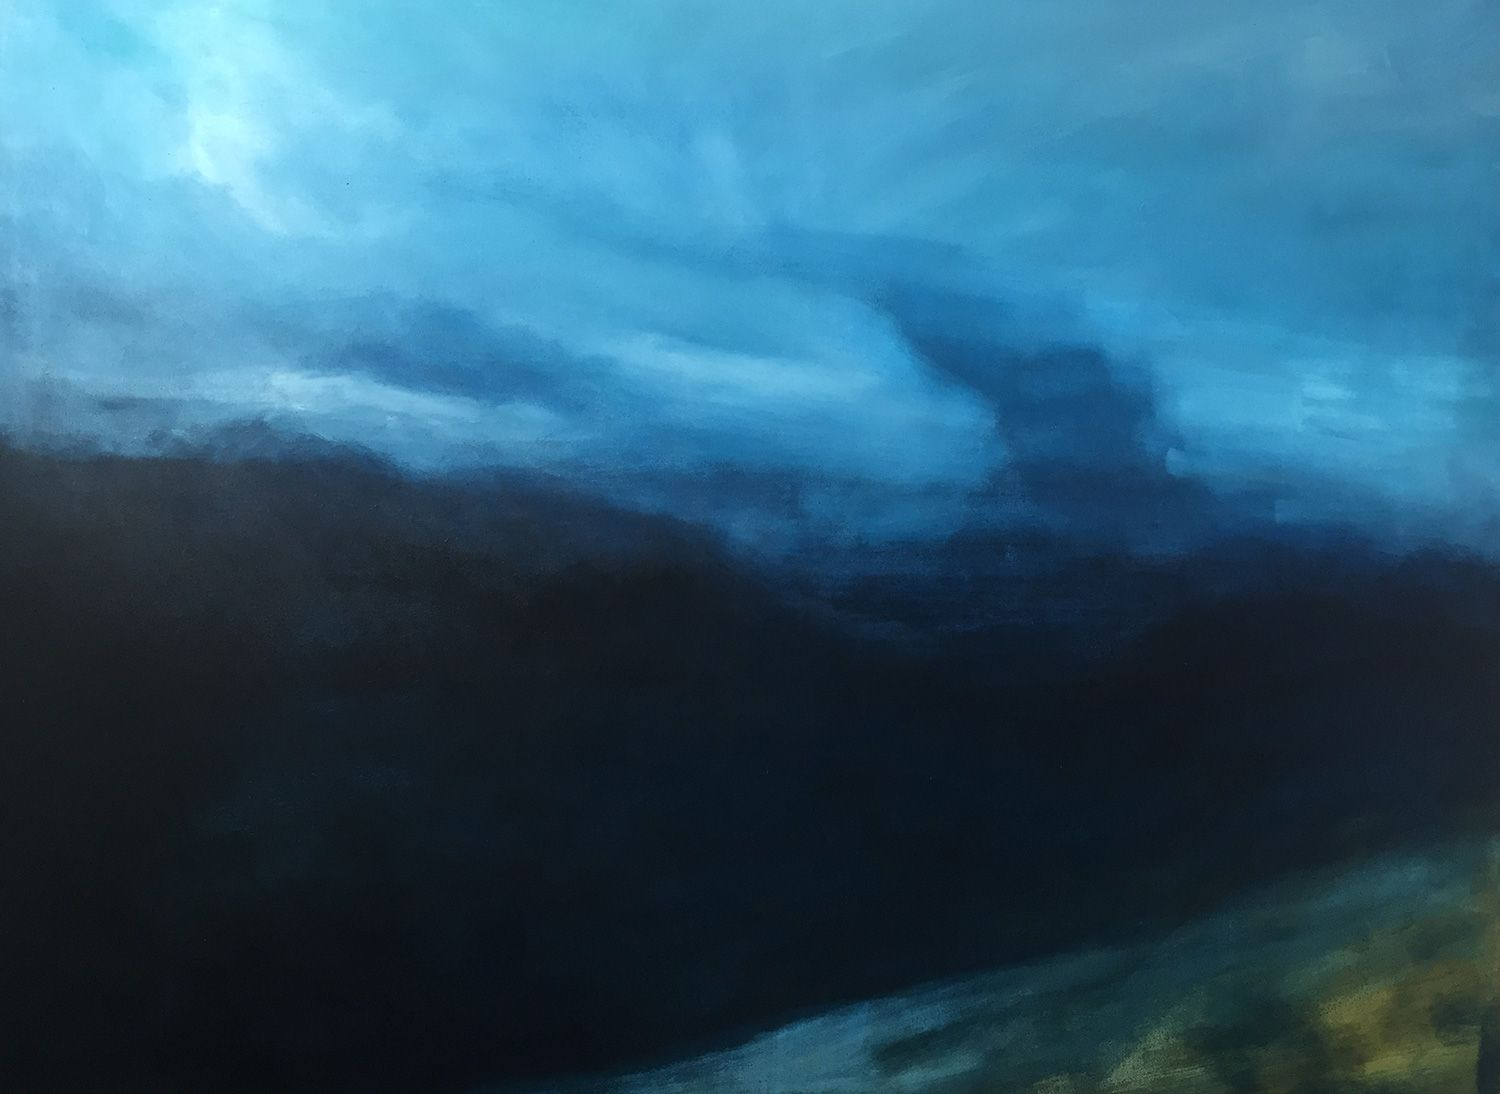 Blurred Landscape by Lily Rigby